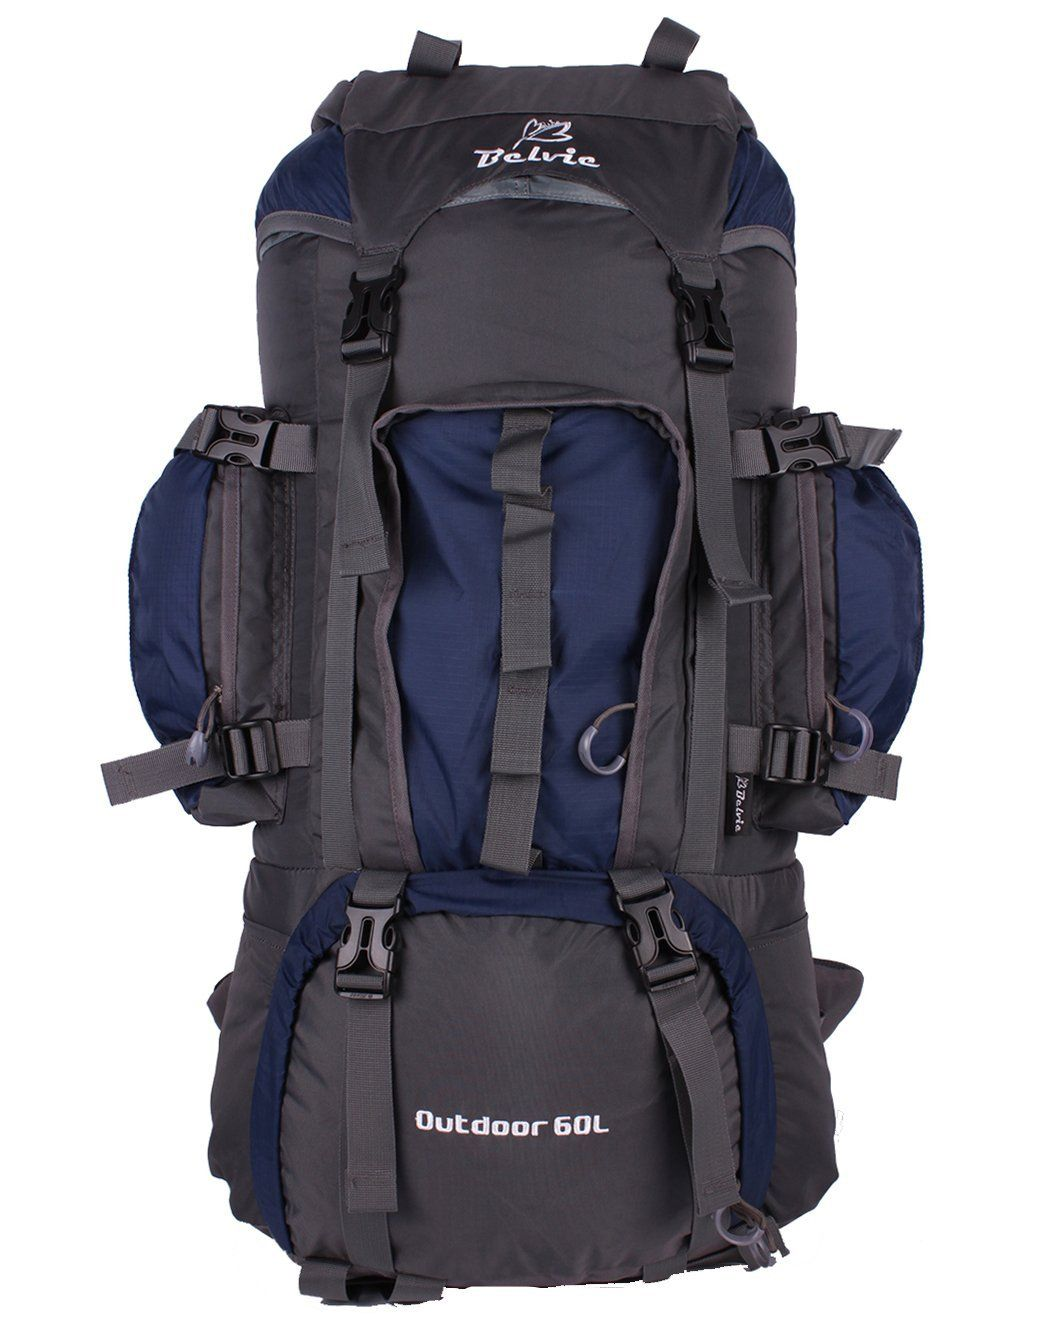 3f4aa9ca78be Belvie 601 Hiking Backpack 60l >>> Check this awesome image ...